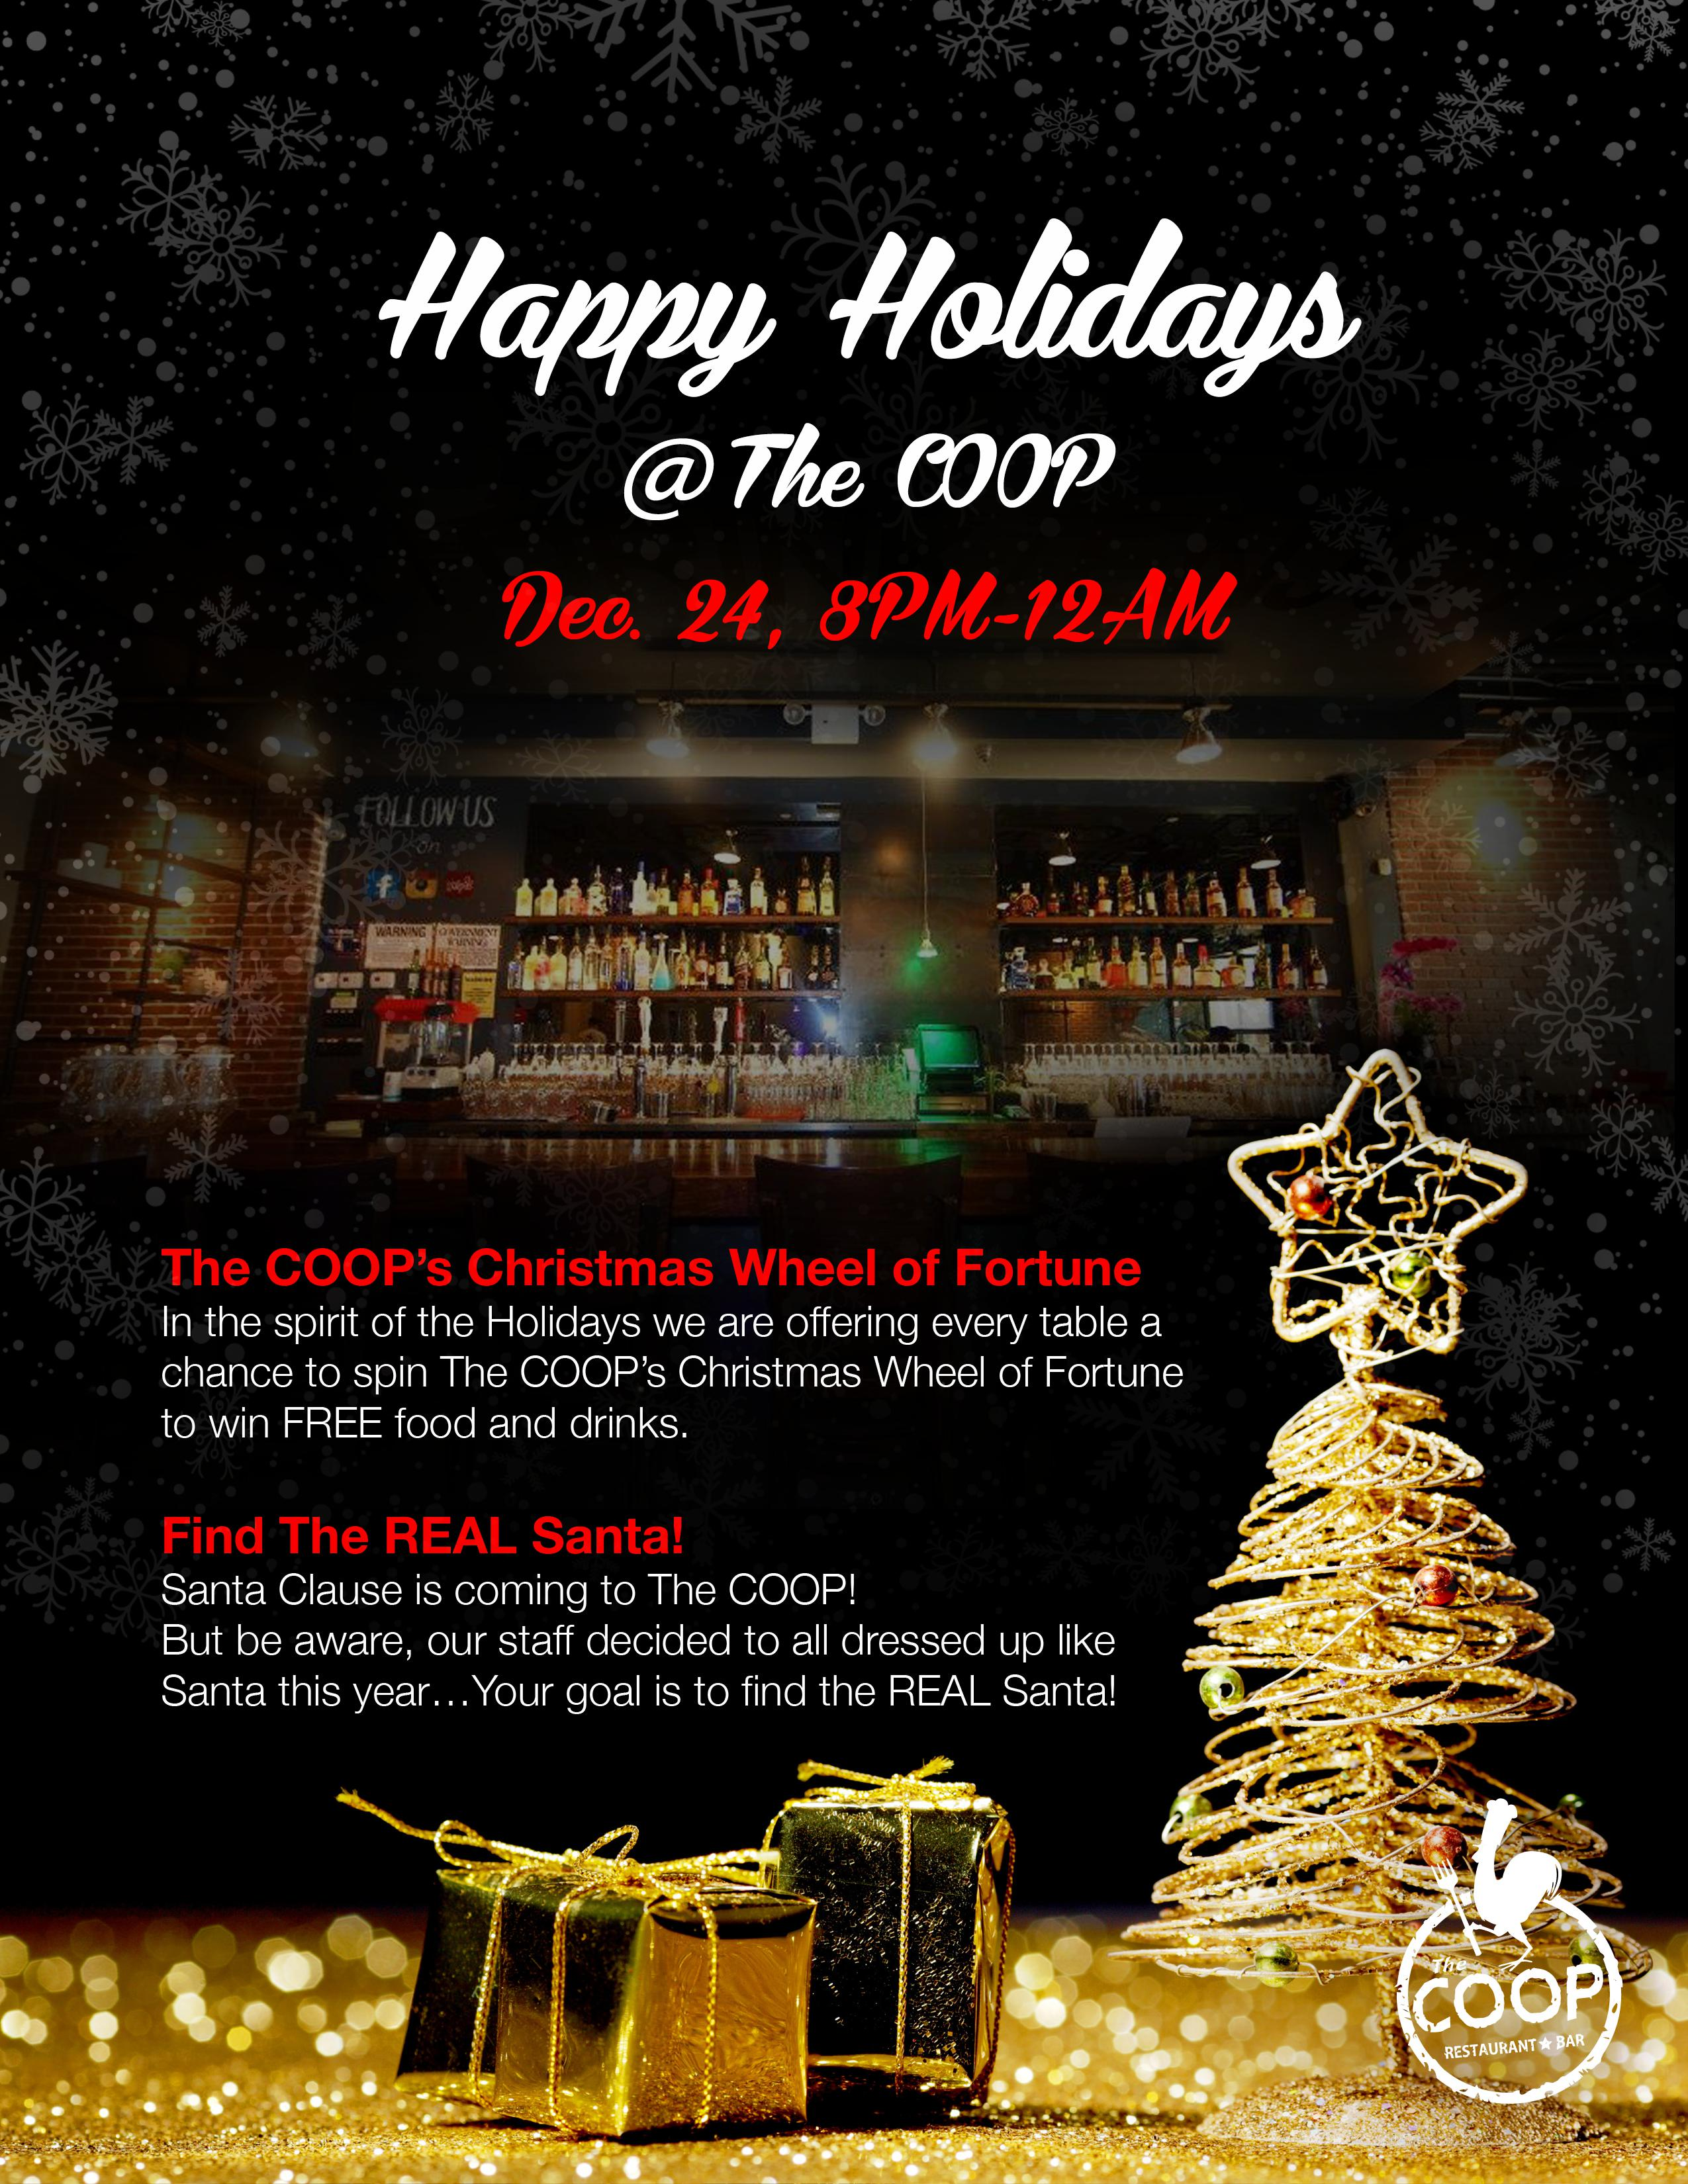 Happy Christmas Event 2015 @ The COOP | The Coop